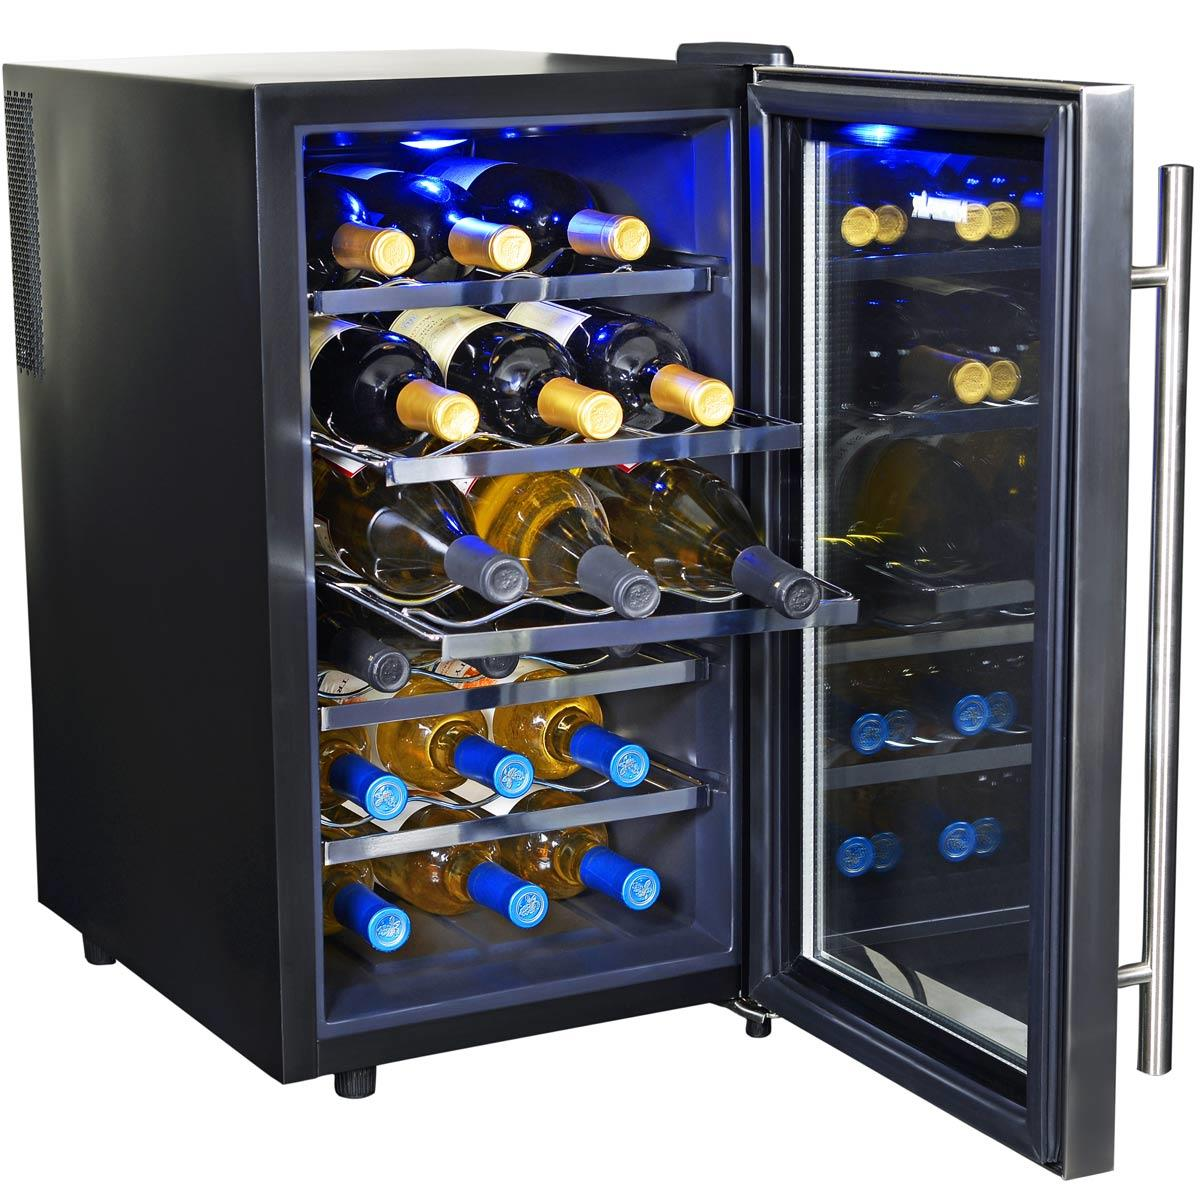 Newair Aw 181e 18 Bottle Thermoelectric Wine Cooler Review